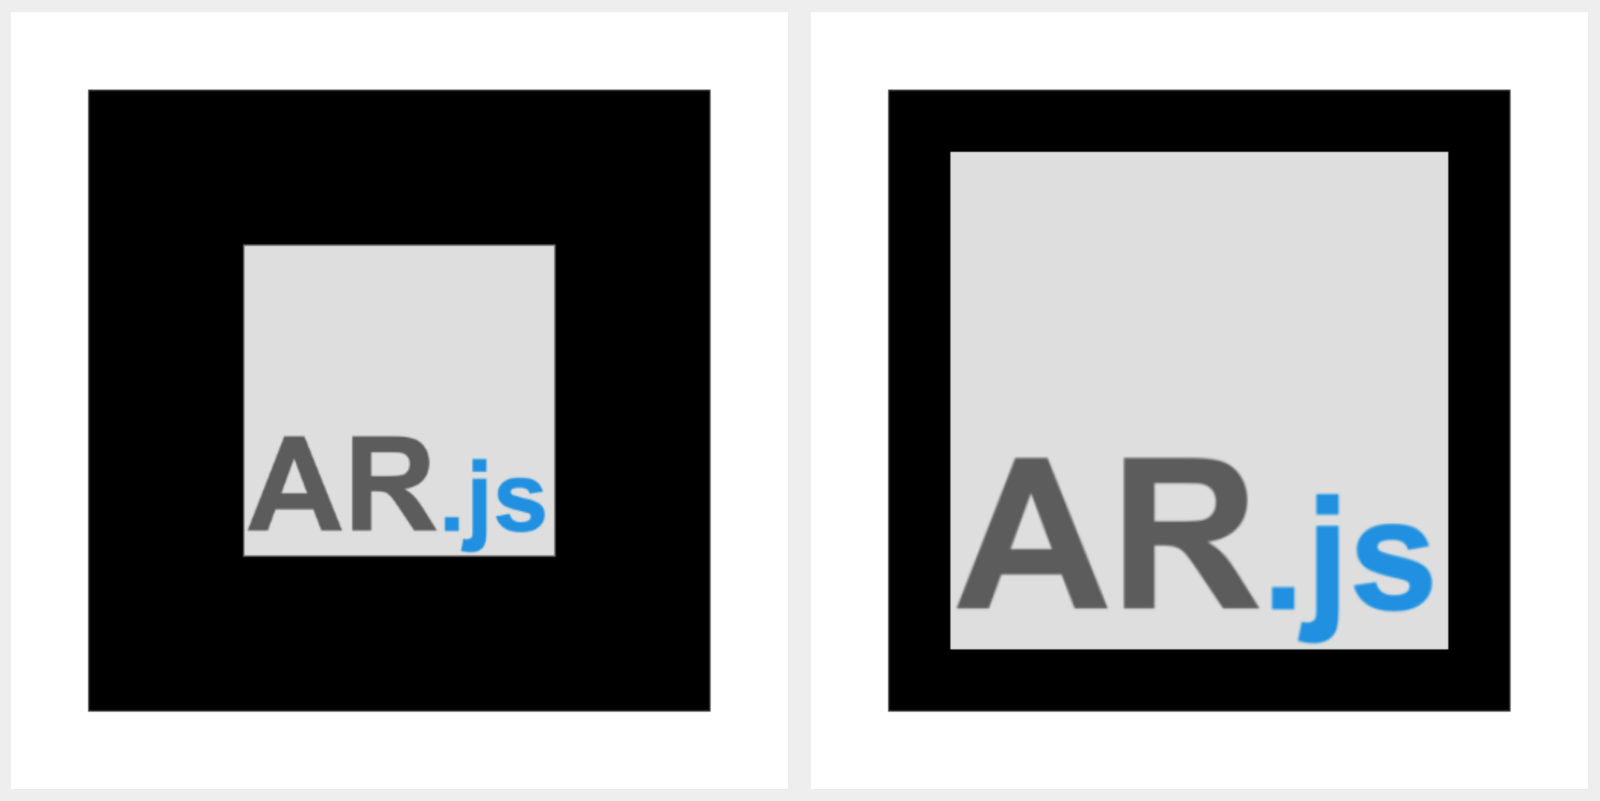 Marker border difference for AR.js